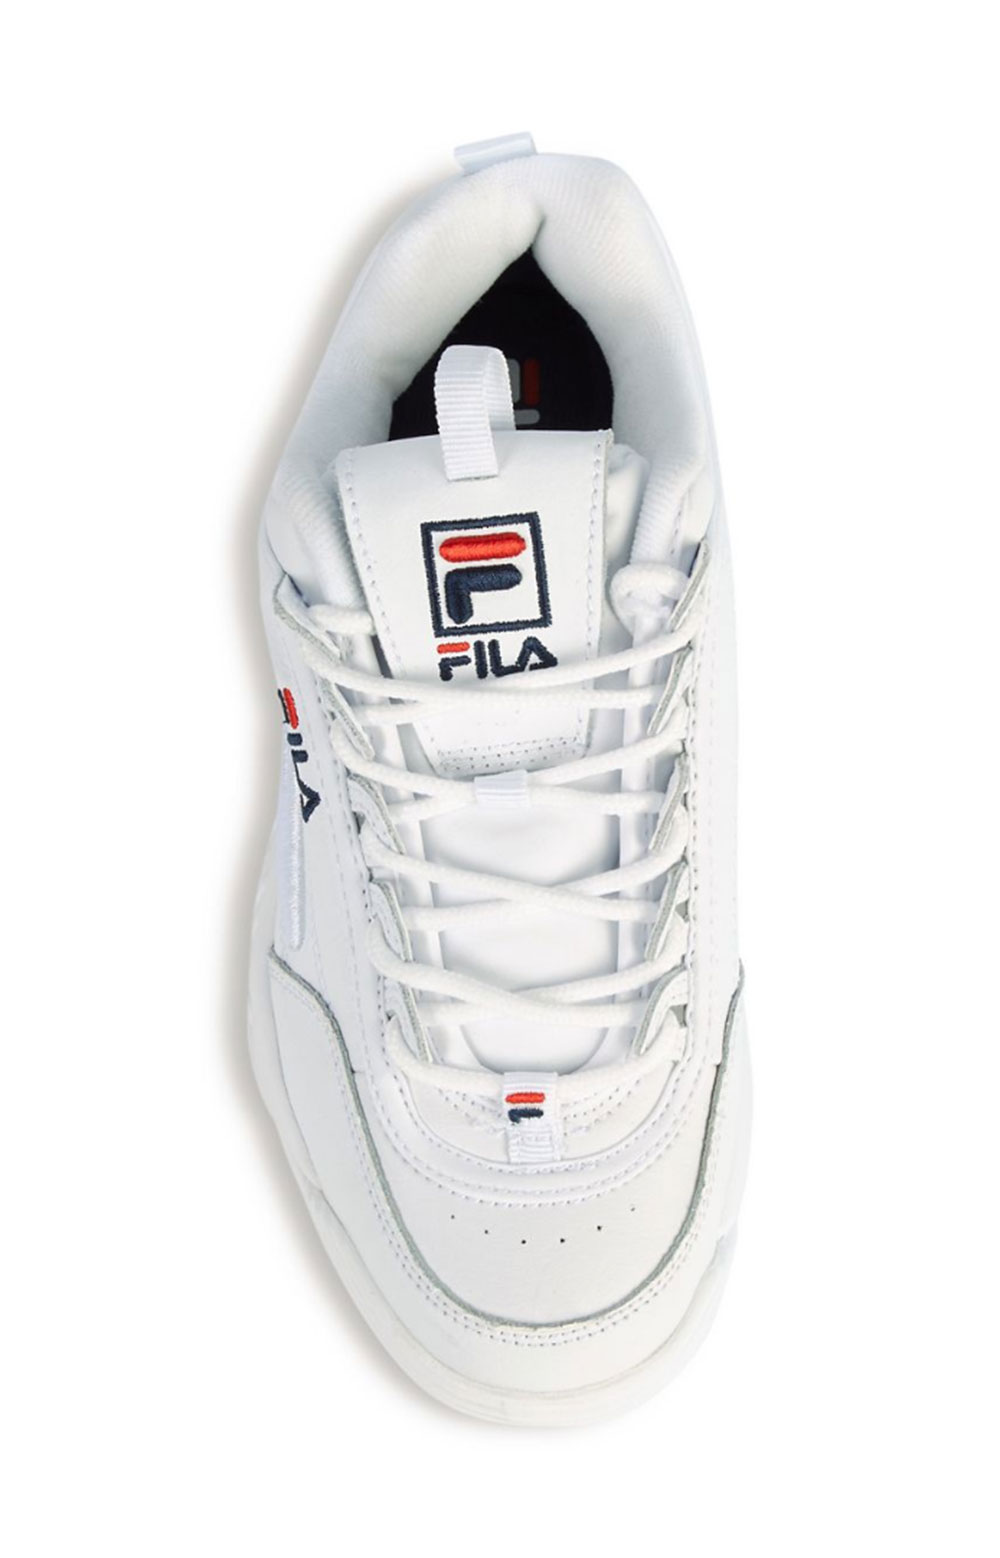 Disruptor II 3D Embroider Shoes - White/Navy/Red 3